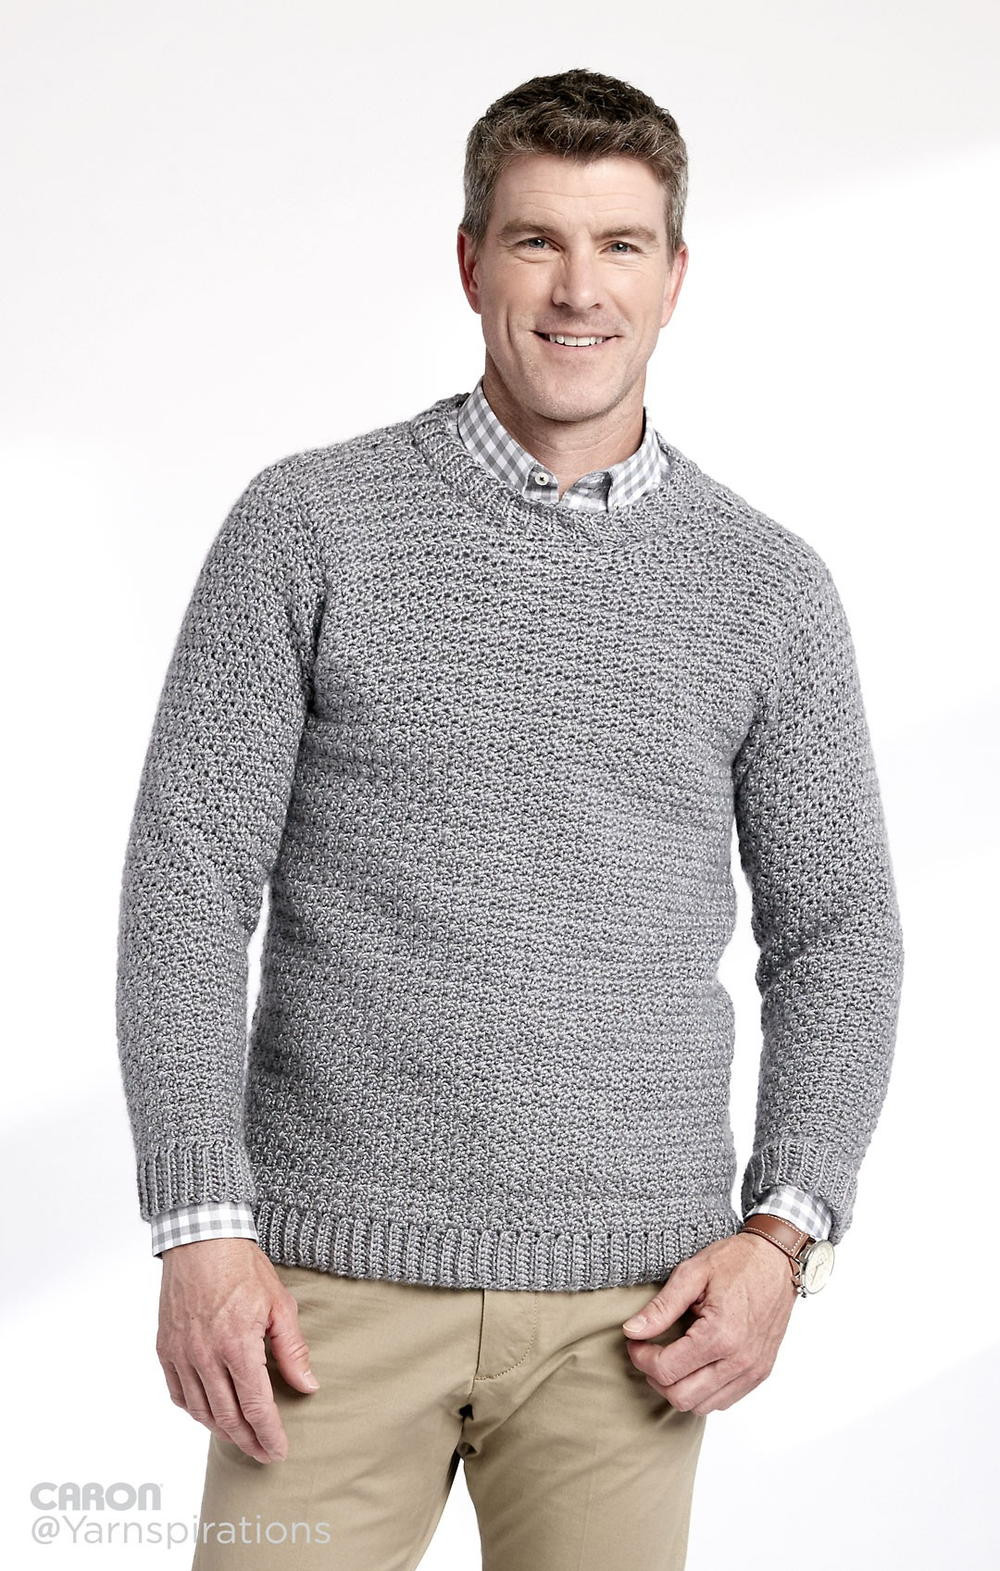 New Adult Crochet Crew Neck Pullover Crochet Mens Sweater Of Awesome 15 Crochet Men Sweater Patterns 2017 Crochet Mens Sweater